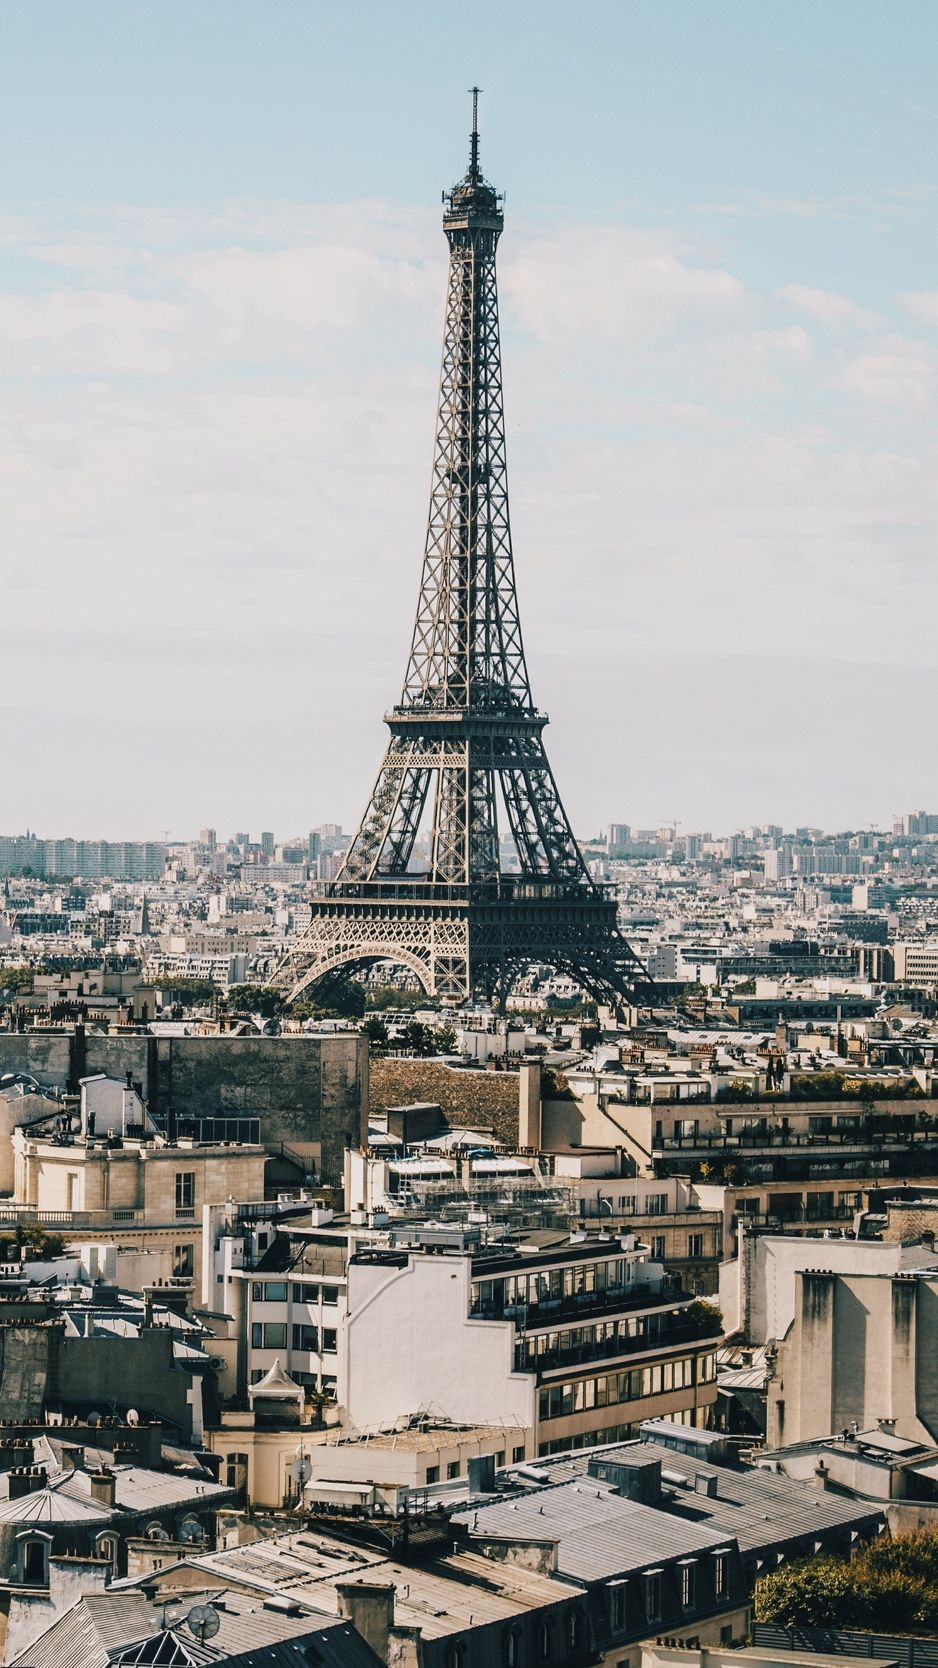 938x1668 Wallpaper Eiffel Tower Paris Buildings Paris Wallpaper Paris Wallpaper Iphone Paris